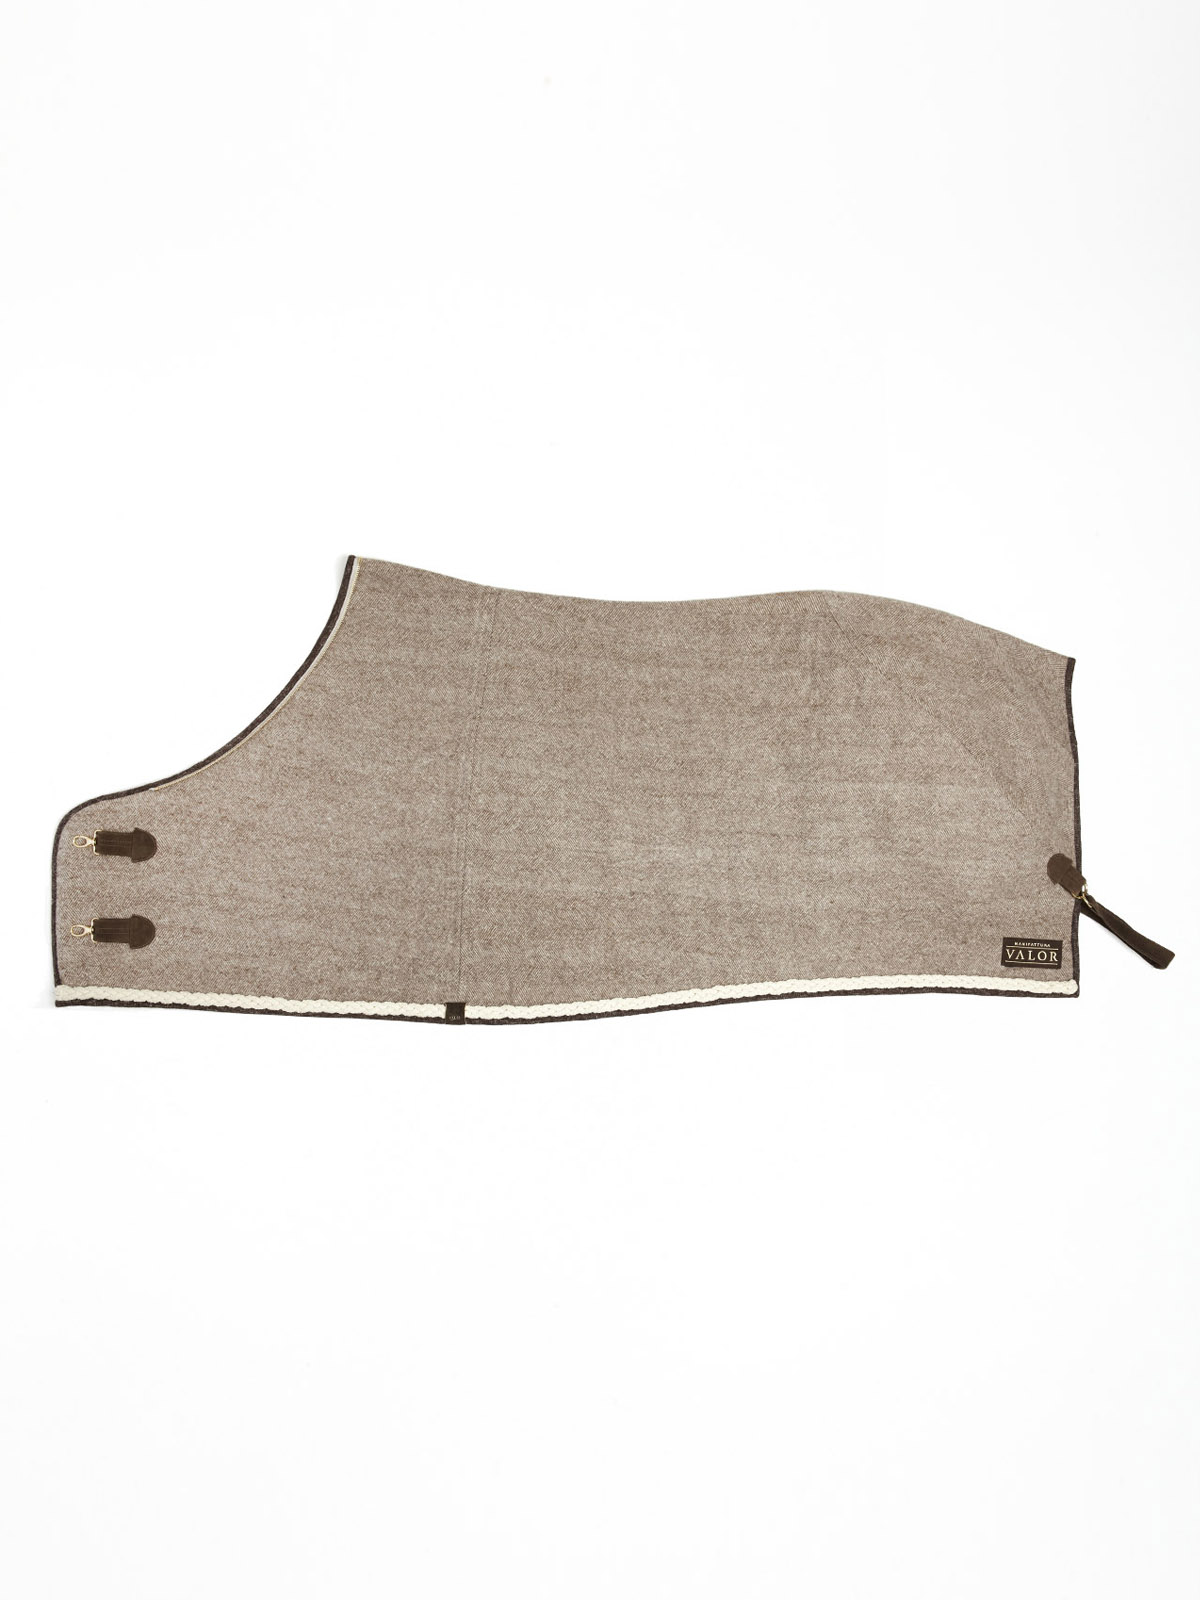 handwoven pure new wool horse rug